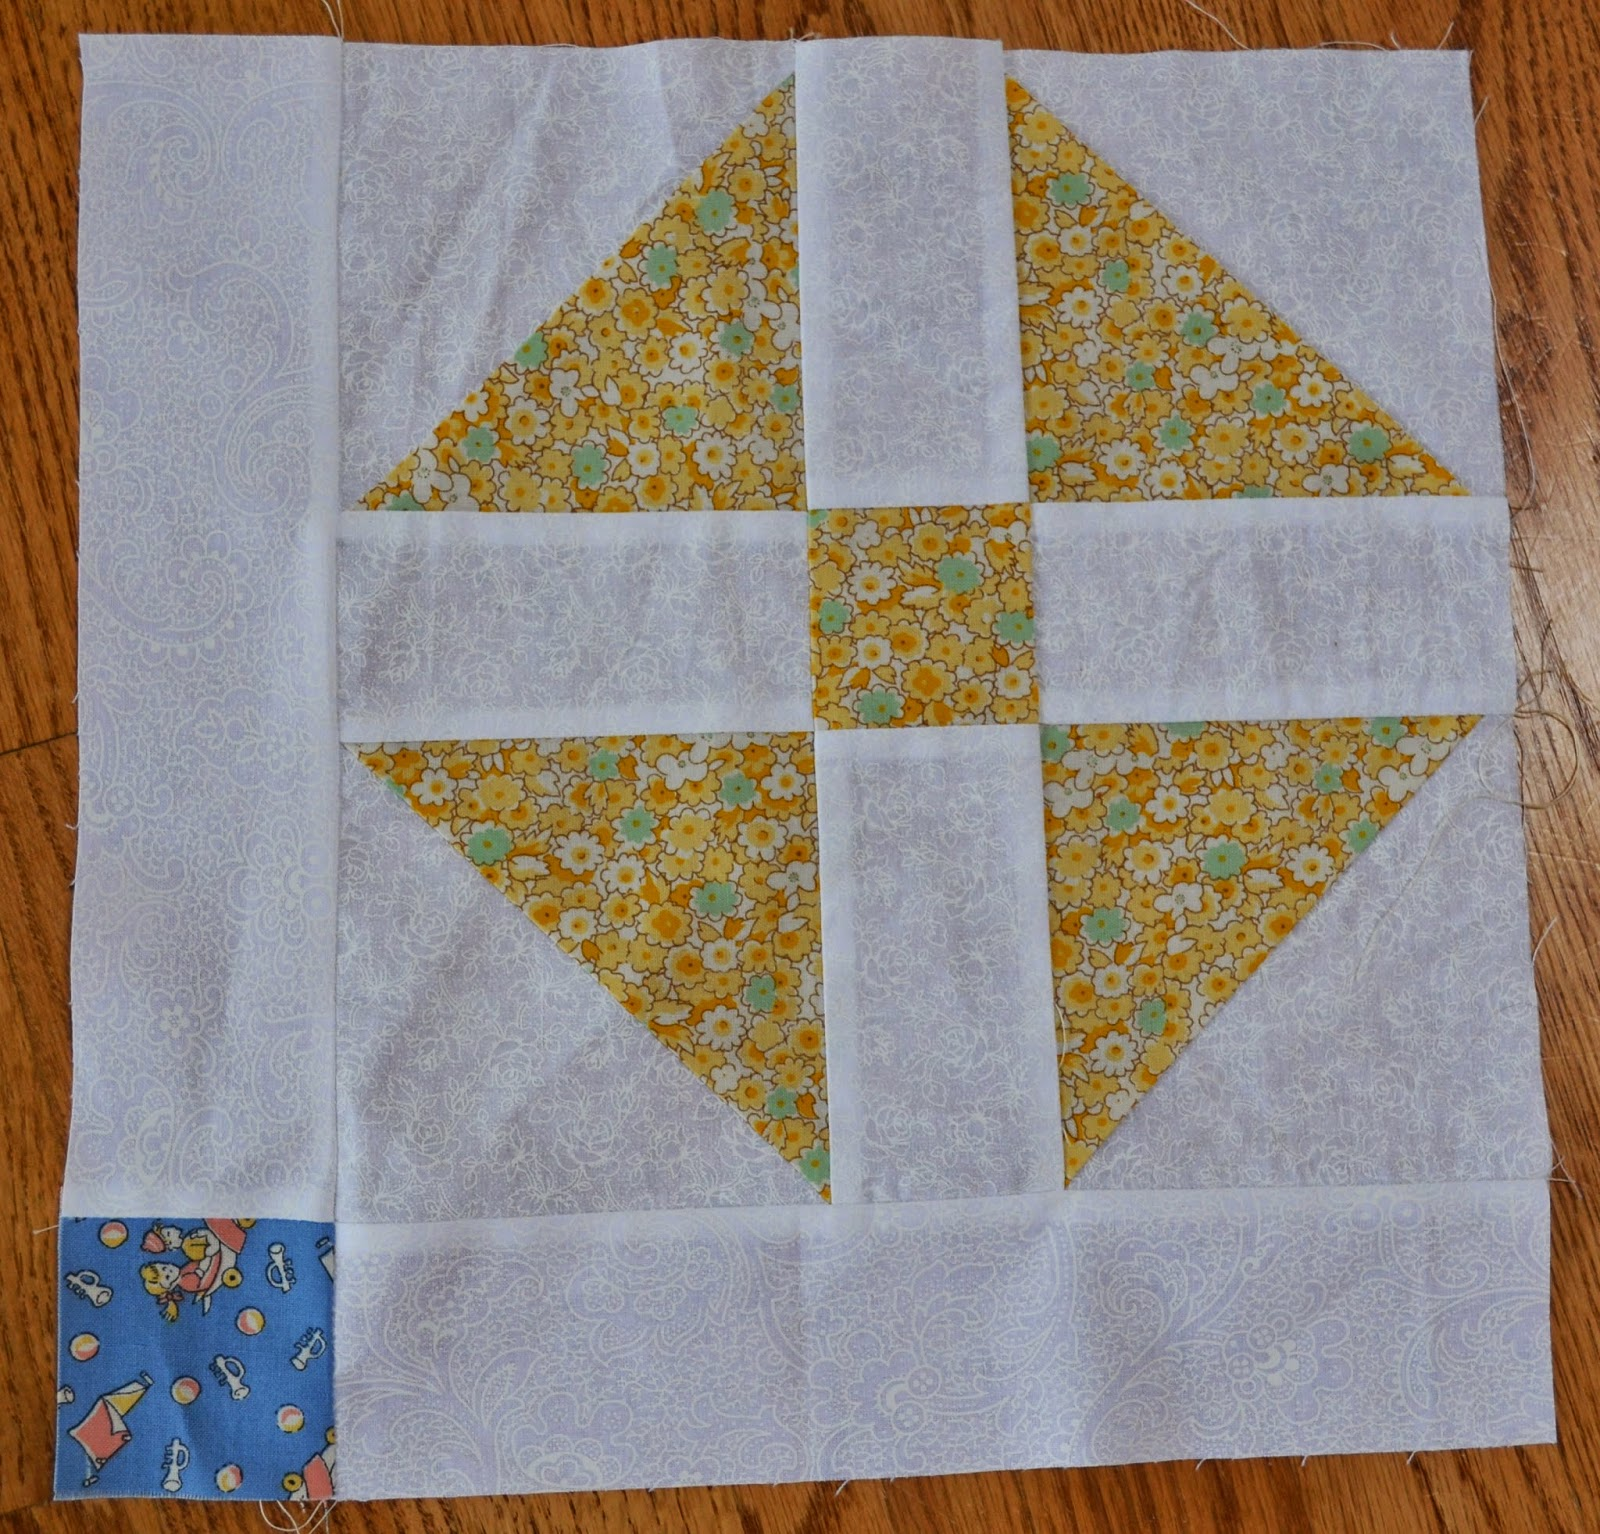 Then I Sewed A 2 1 Square To The End Of My Remaining Strips These Left Side Each Block Had 24 Blocks That Looked Like